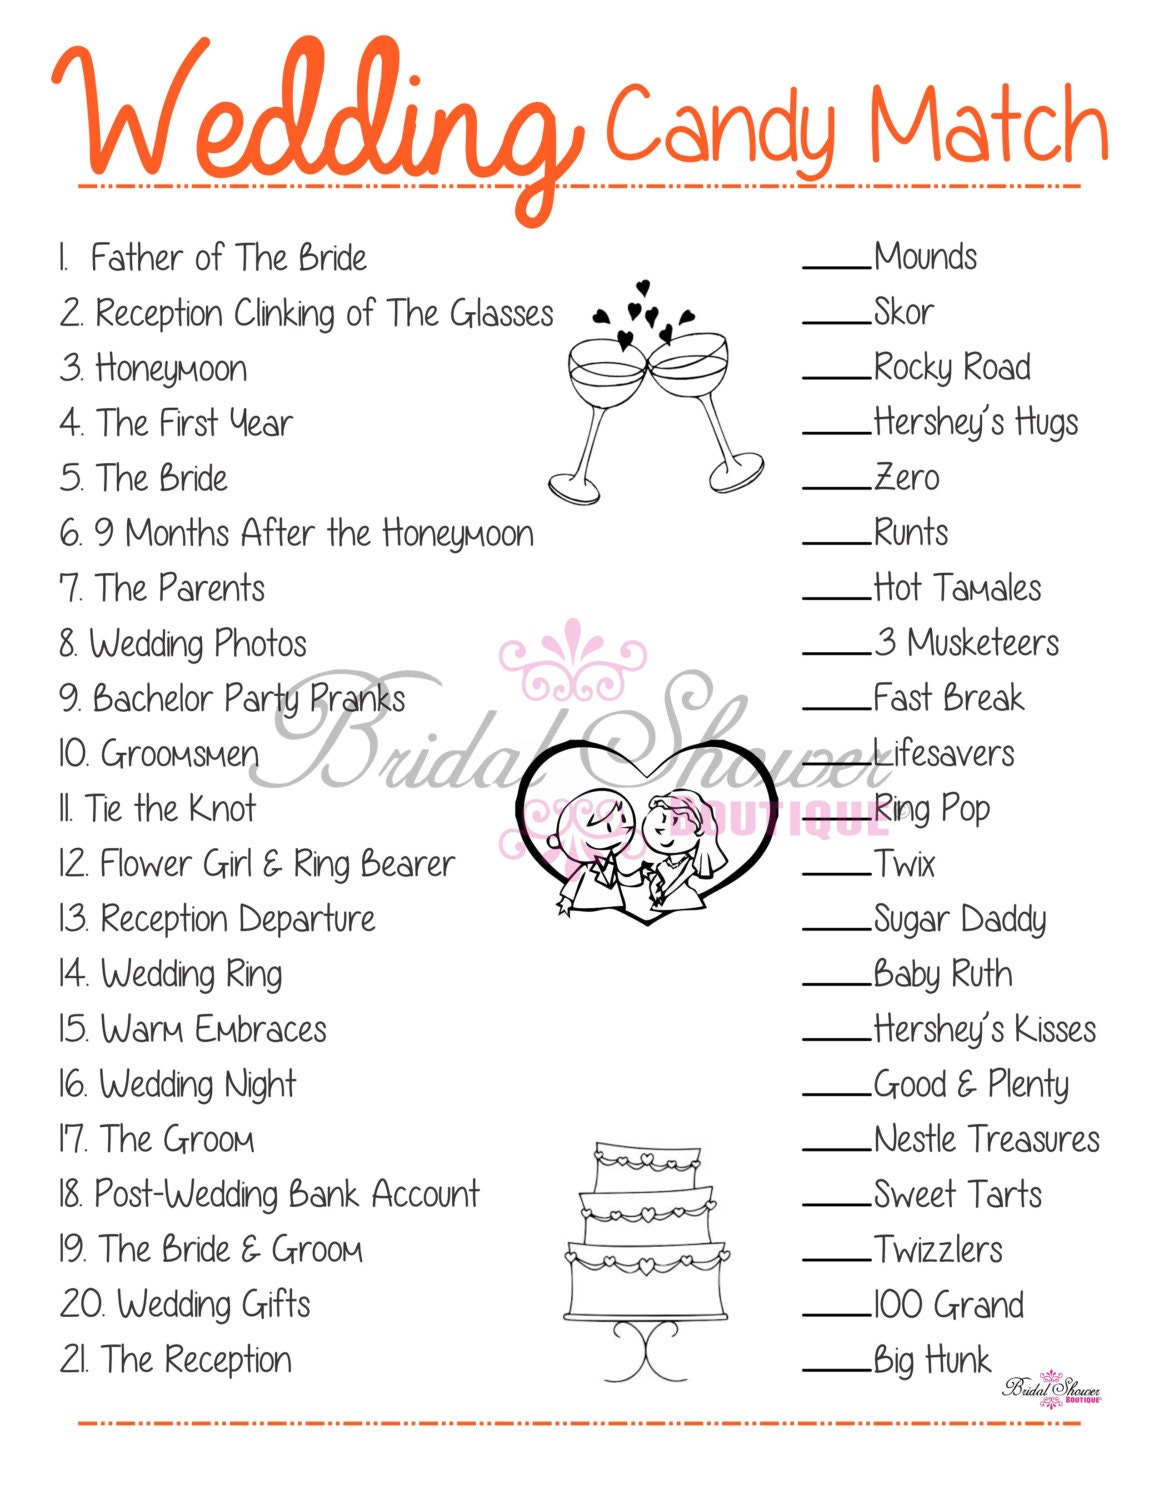 Wedding candy match bridal shower game orange fun detailed for Bridal shower games that aren t cheesy